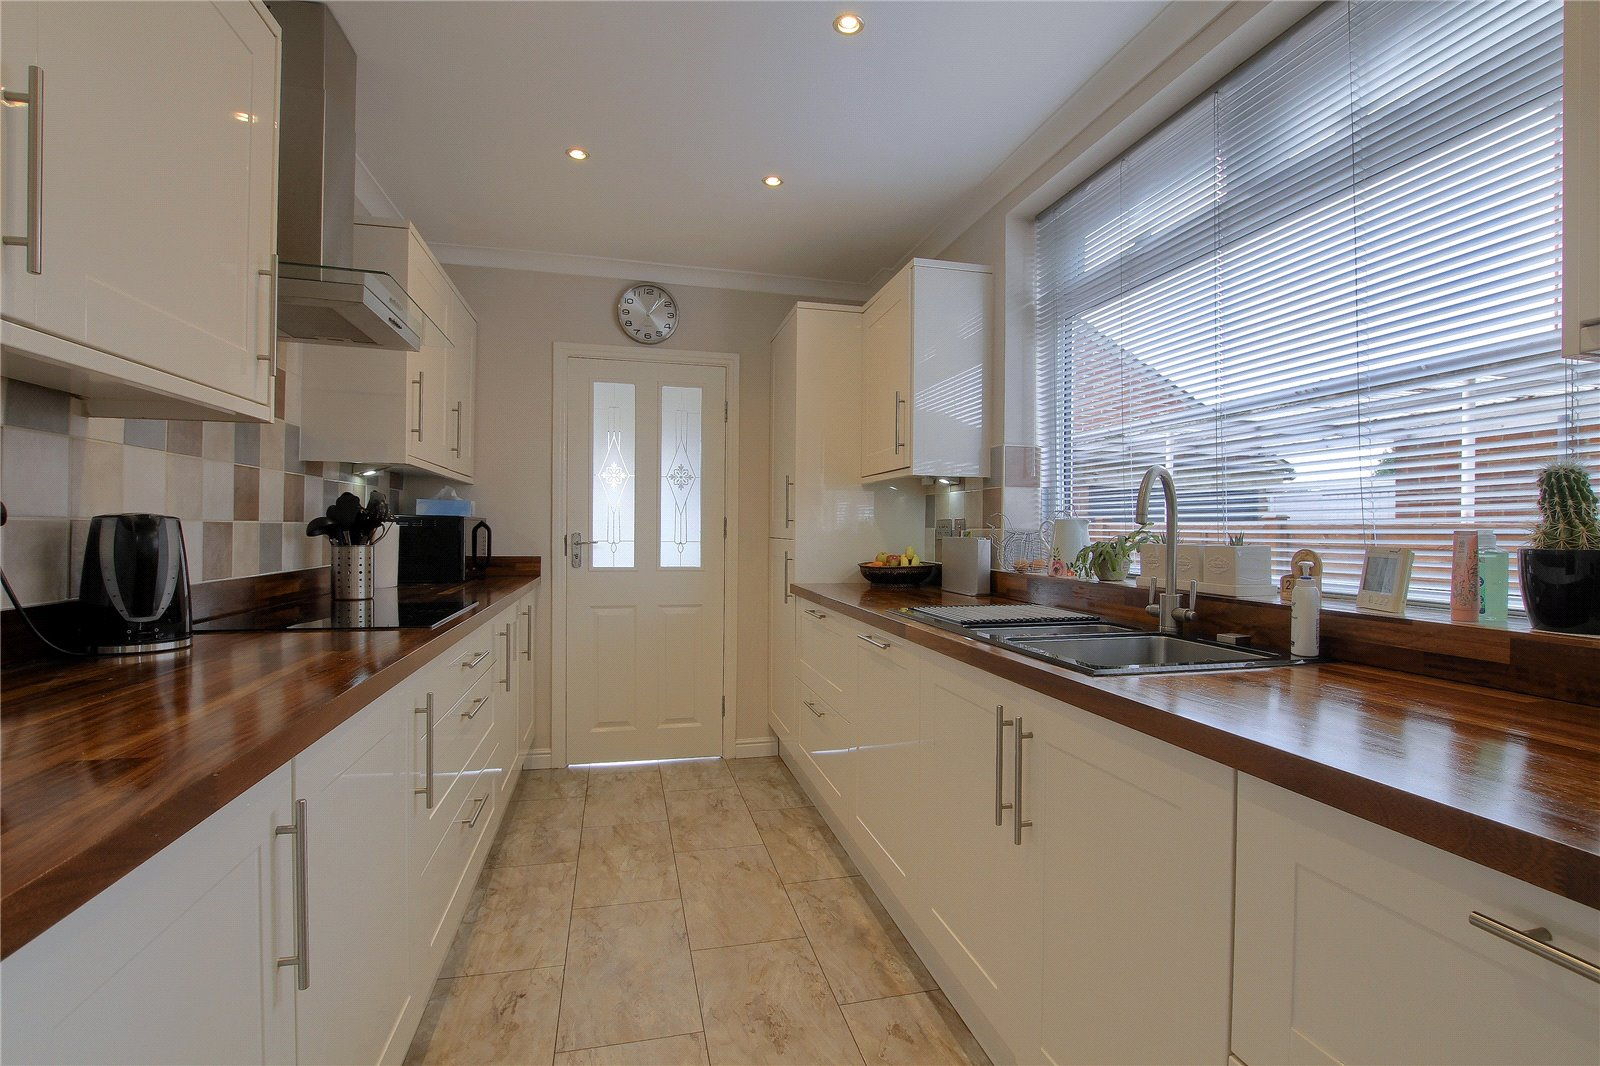 4 bed house for sale in Oldford Crescent, Acklam  - Property Image 3